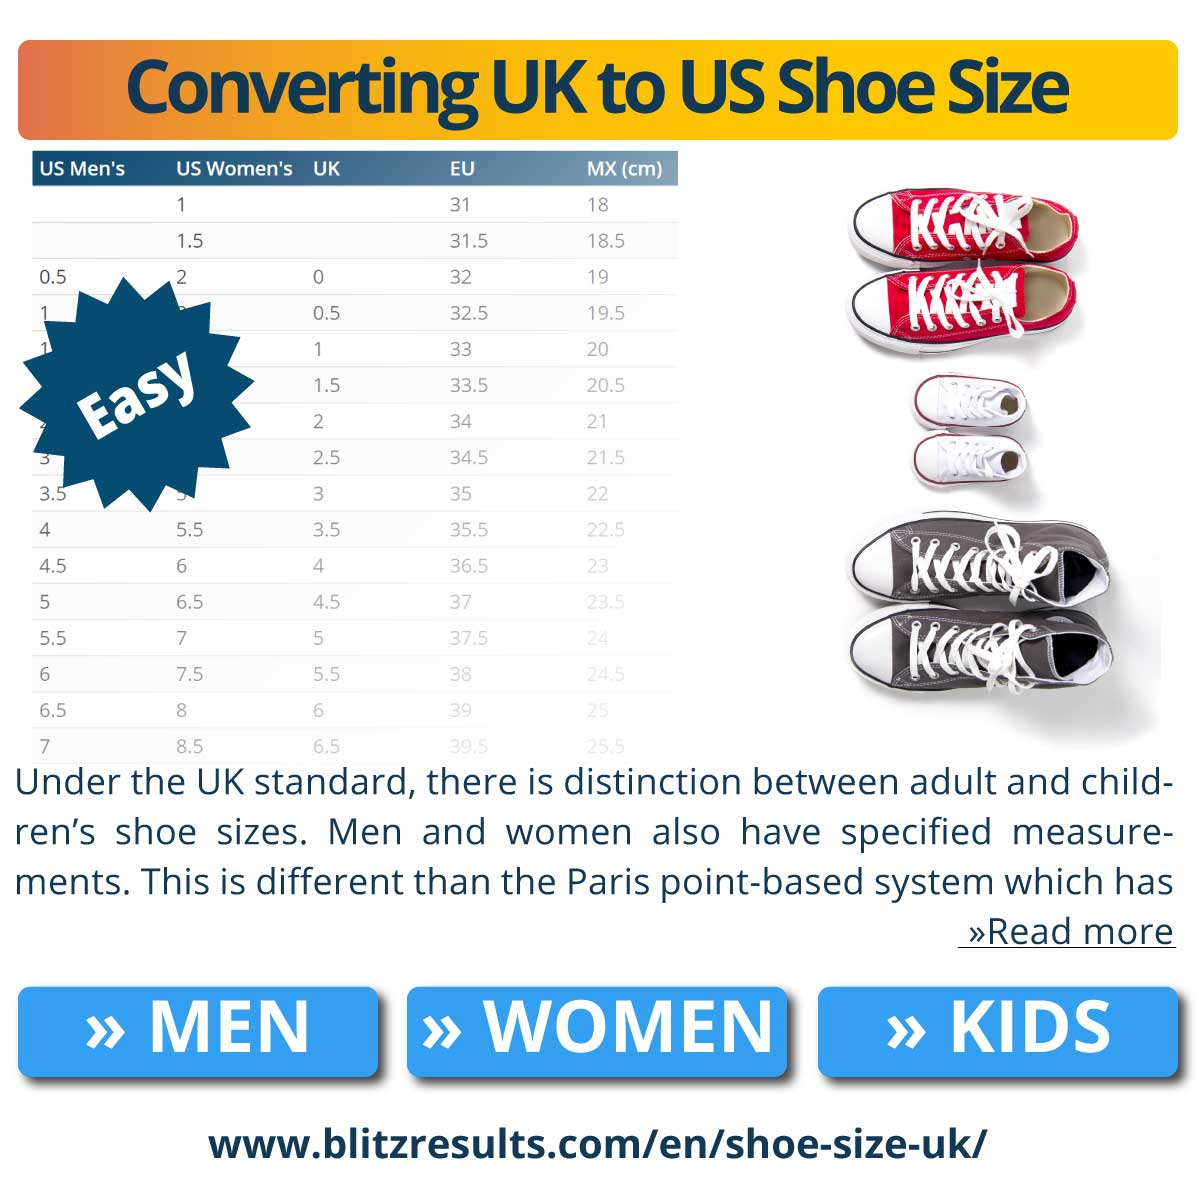 Converting UK to US Shoe Size